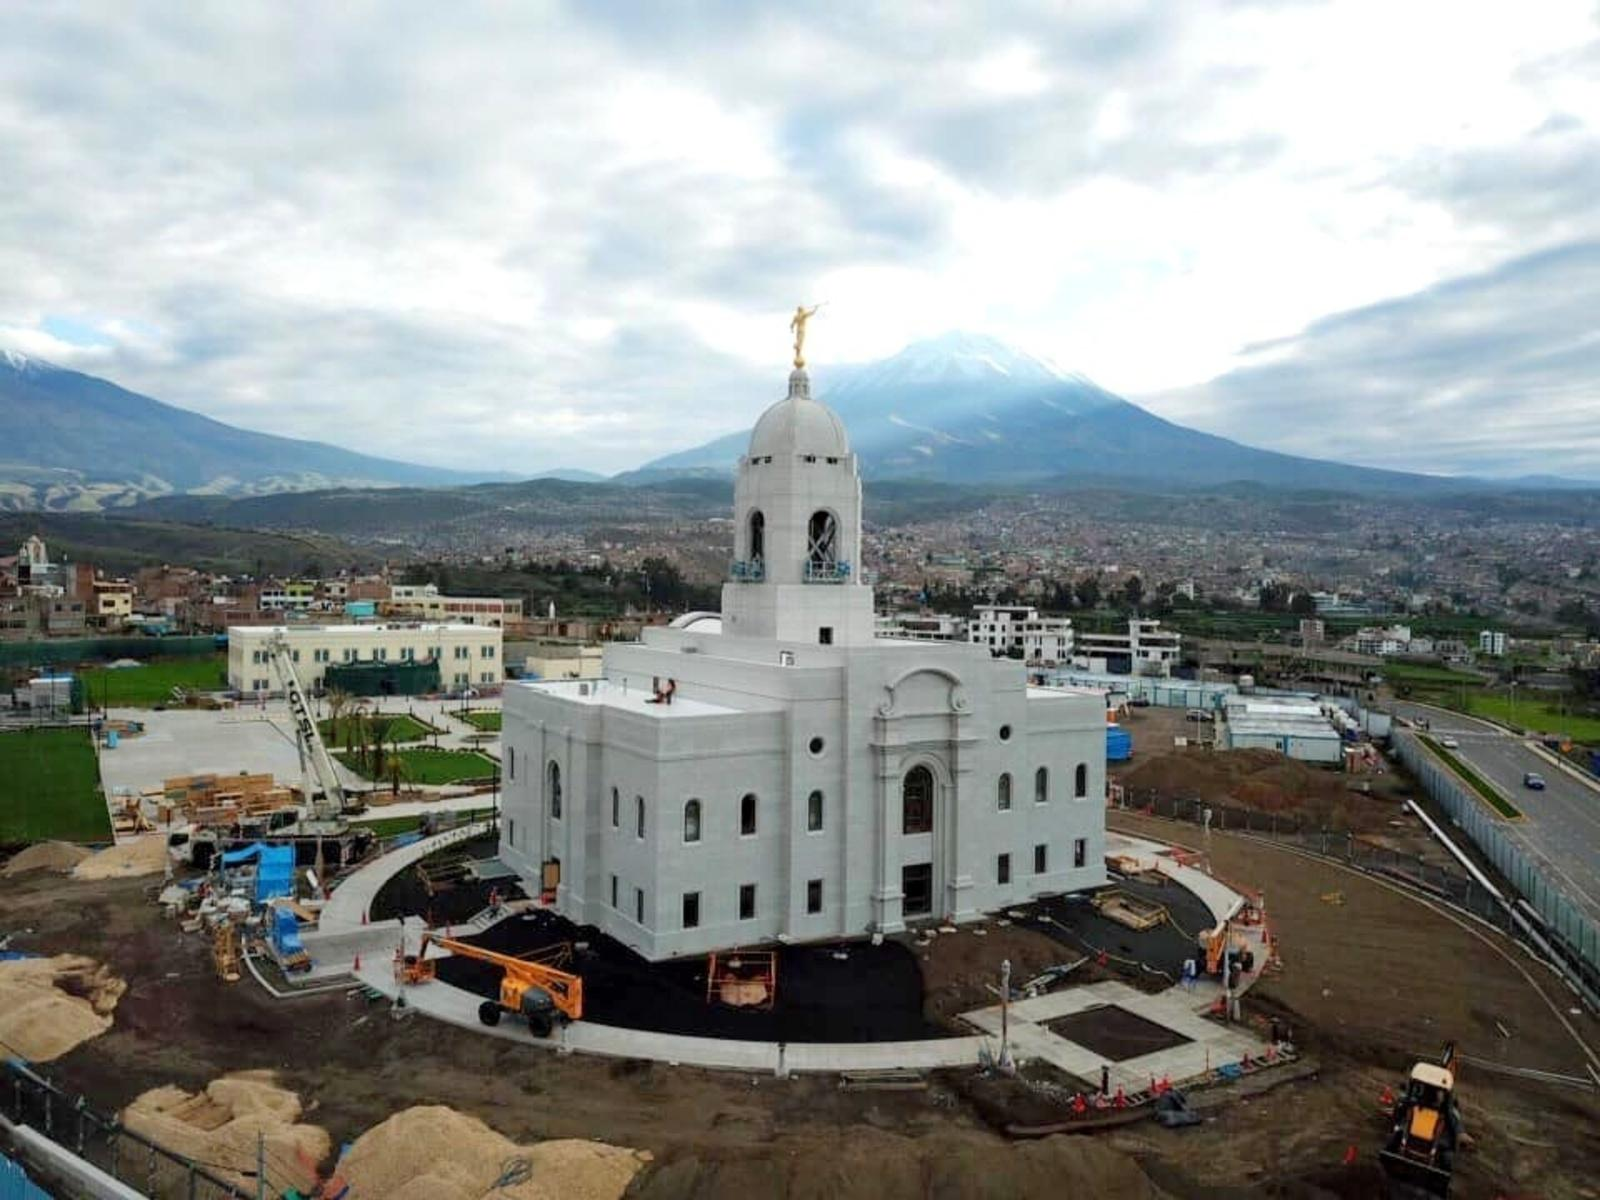 Arequipa Peru Temple Photograph Gallery | ChurchofJesusChristTemples.org